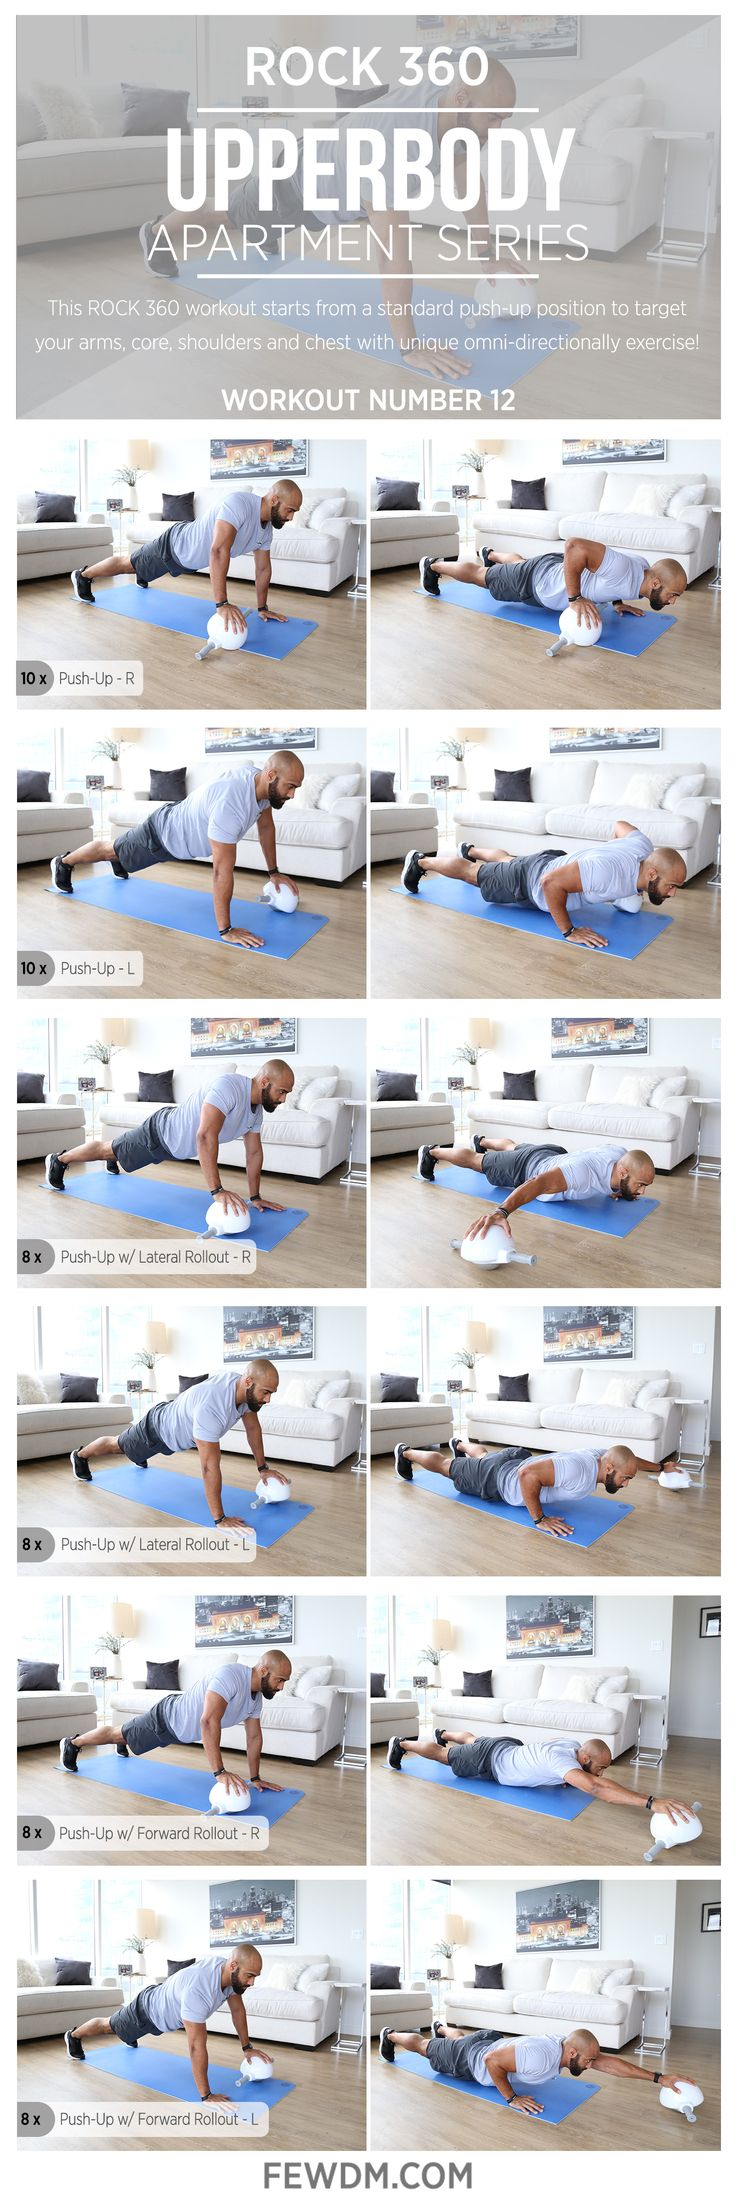 New, upper body exercises with ROCK 360 are challenging and engaging!  Workout #12 in the Apartment Series, Upper Body.